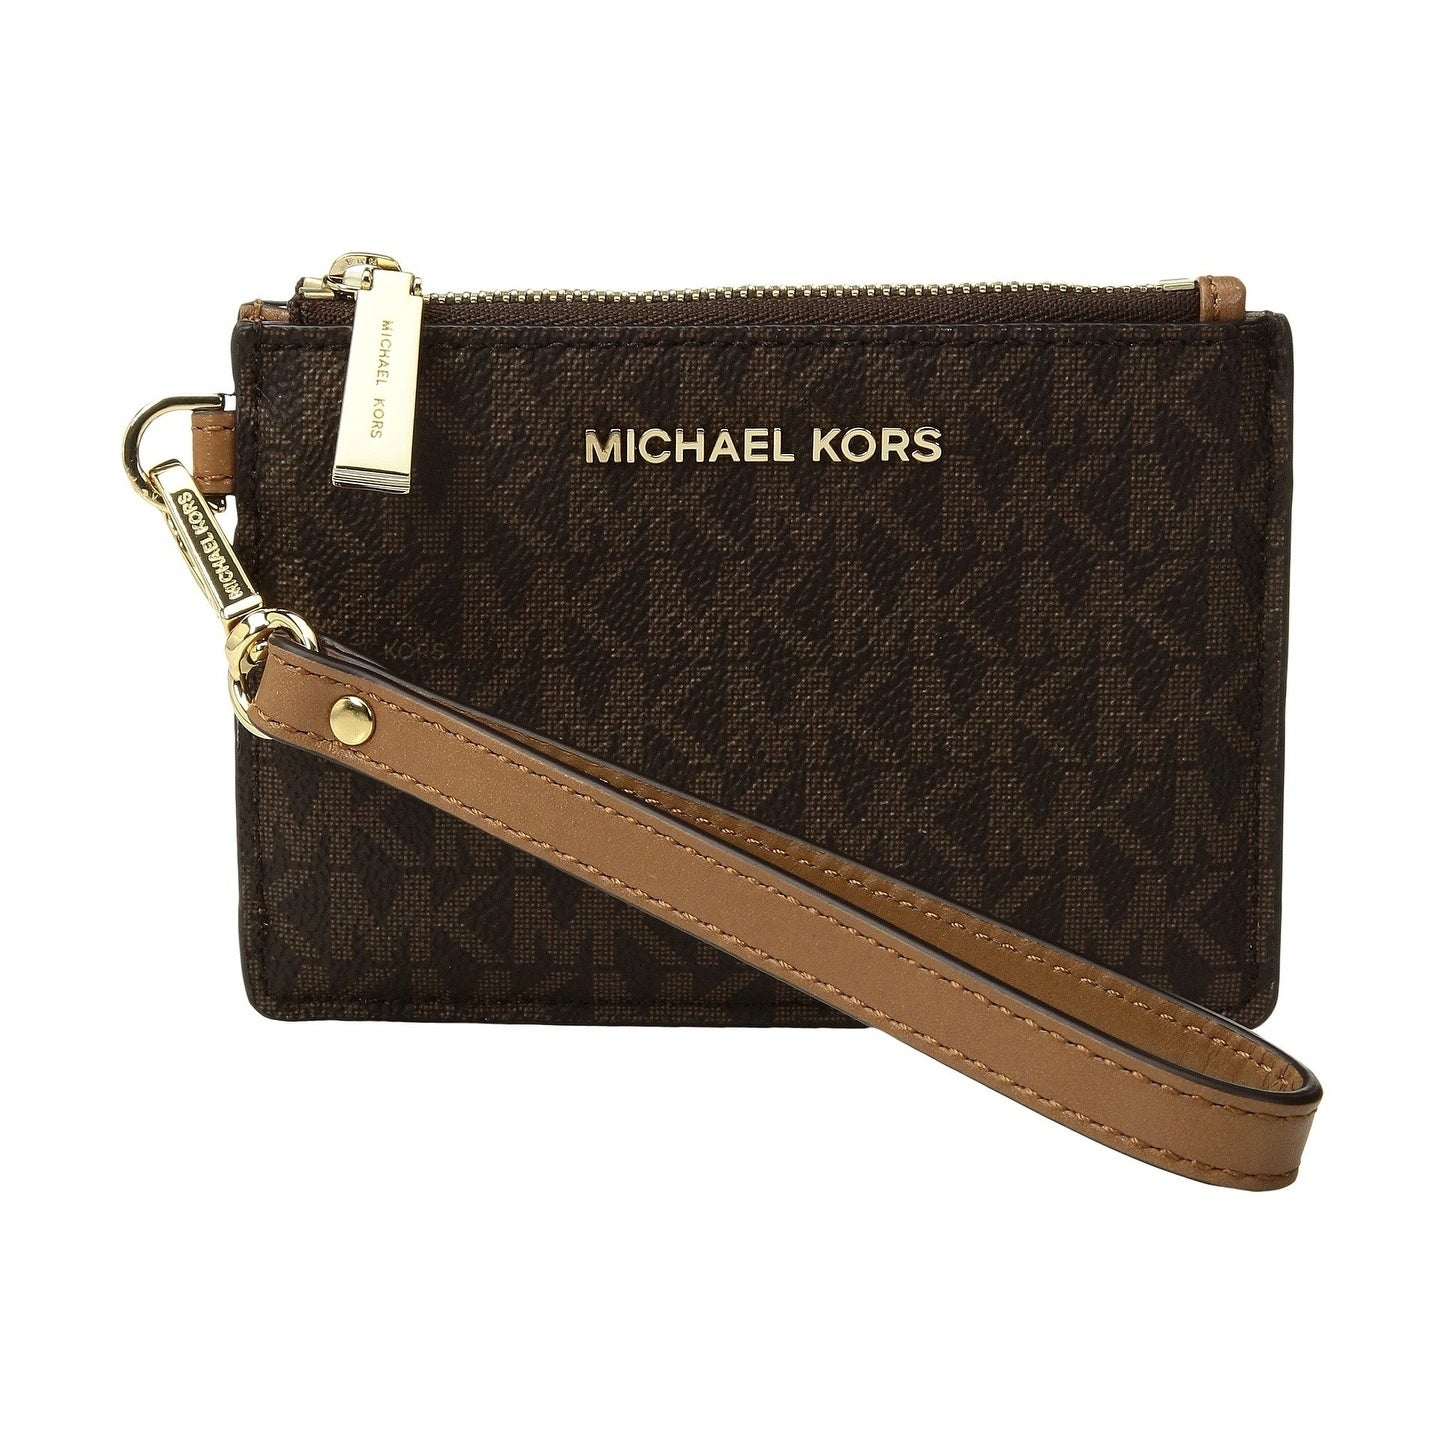 46b4f4be7d98 Shop MICHAEL Michael Kors Signature Small Coin Purse Brown - Free Shipping  Today - Overstock - 22277058